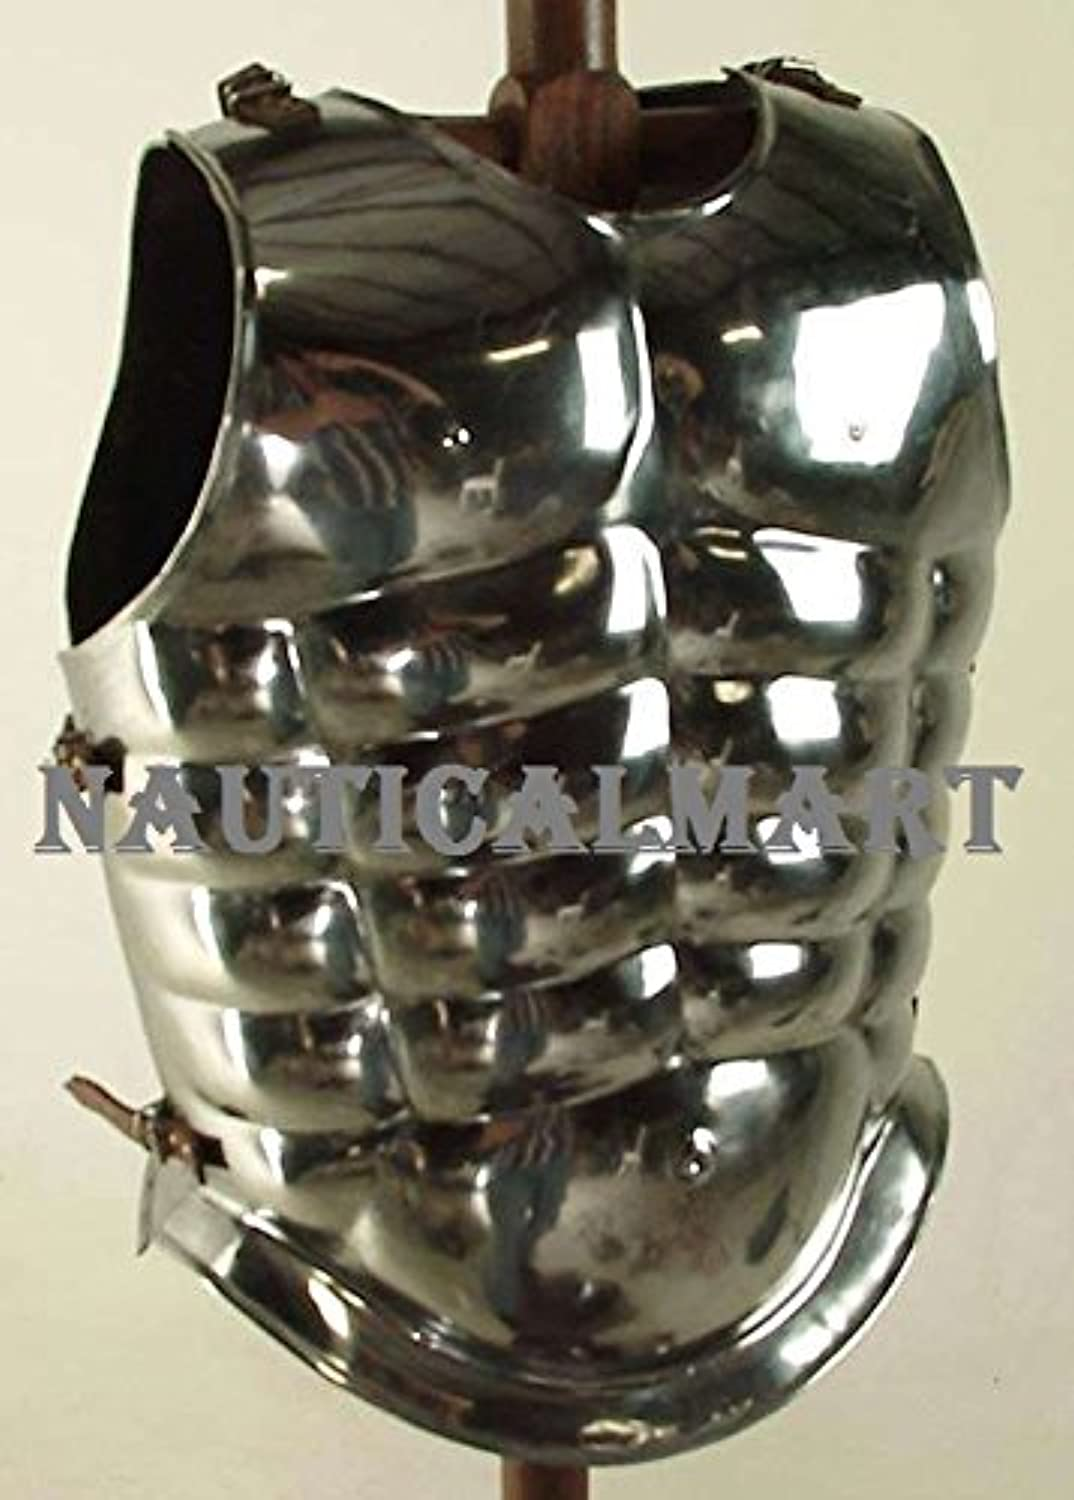 NAUTICALMART Medieval Armor Breastplate Muscle Harness